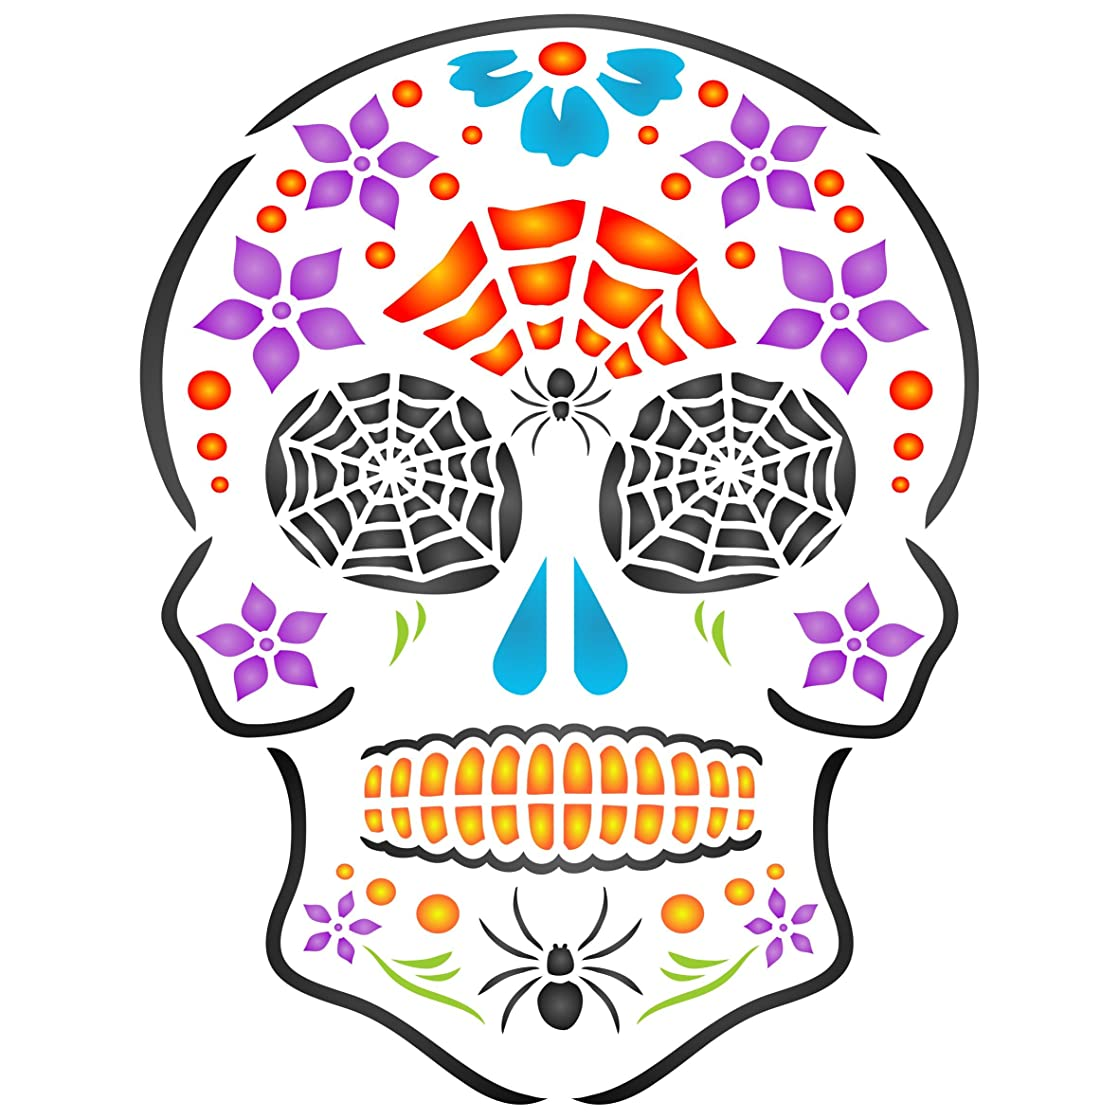 """Halloween Sugar Skull Stencil - (size 8""""w x 10.5""""h) Reusable Wall Stencils for Painting - Day of the Dead Decor Ideas - Use on Walls, Floors, Fabrics, Glass, Wood, and More…"""